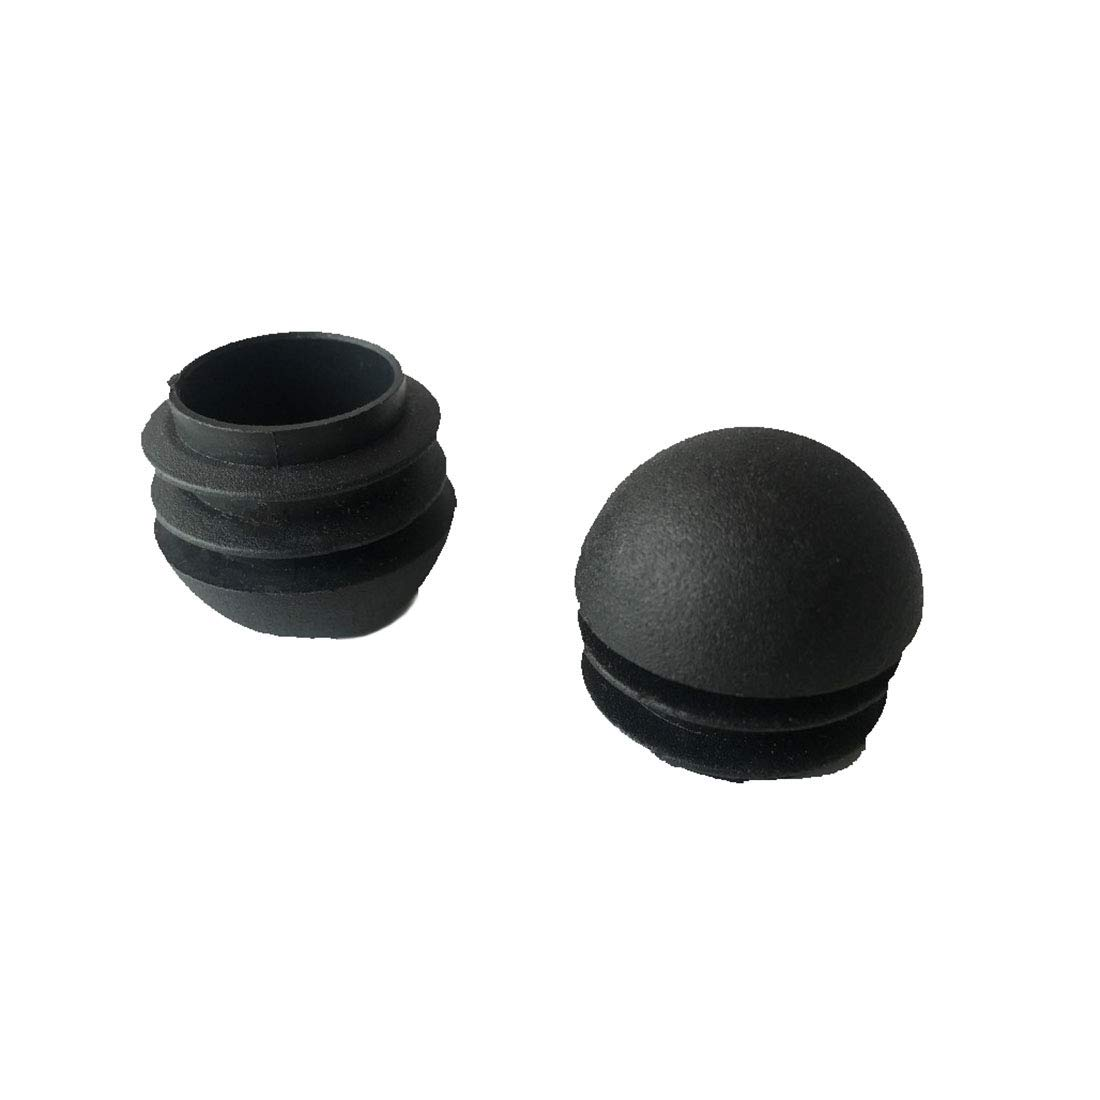 "Flyshop 16-Pack 1"" 25mm Black Plastic Cap Round Insert Furniture Glides for Tables and Chairs"